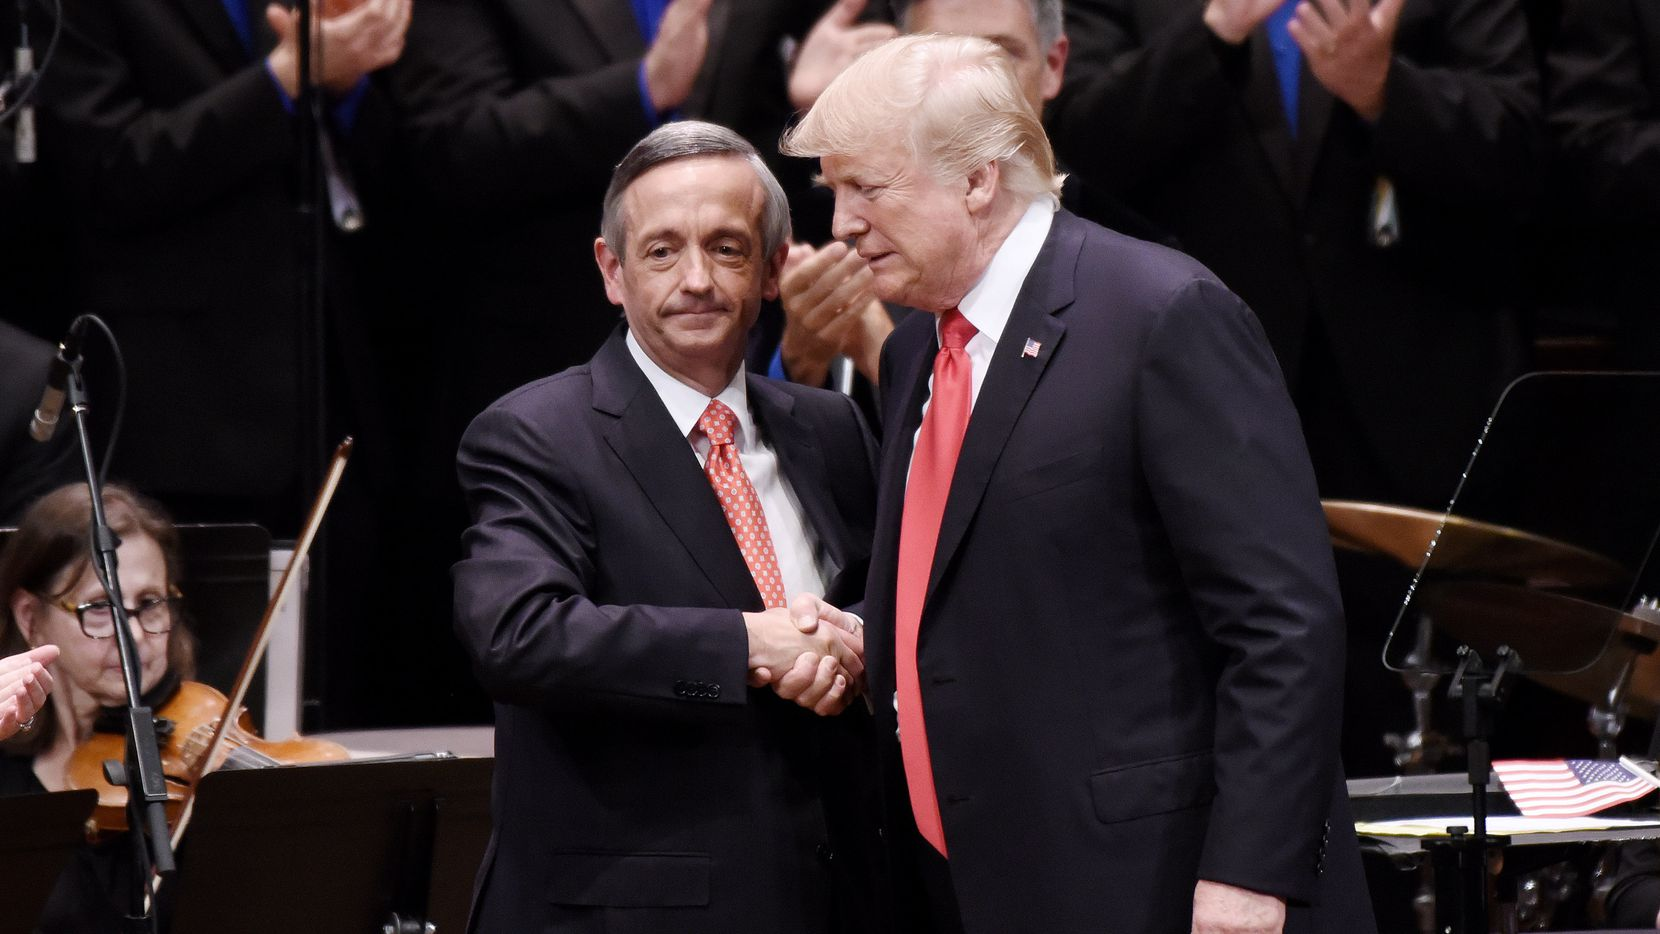 President Donald Trump and Pastor Robert Jeffress, left, participate in the Celebrate Freedom Rally at the John F. Kennedy Center for the Performing Arts in Washington, D.C., on Saturday, July 1, 2017. (Olivier Douliery/Abaca Press/TNS)